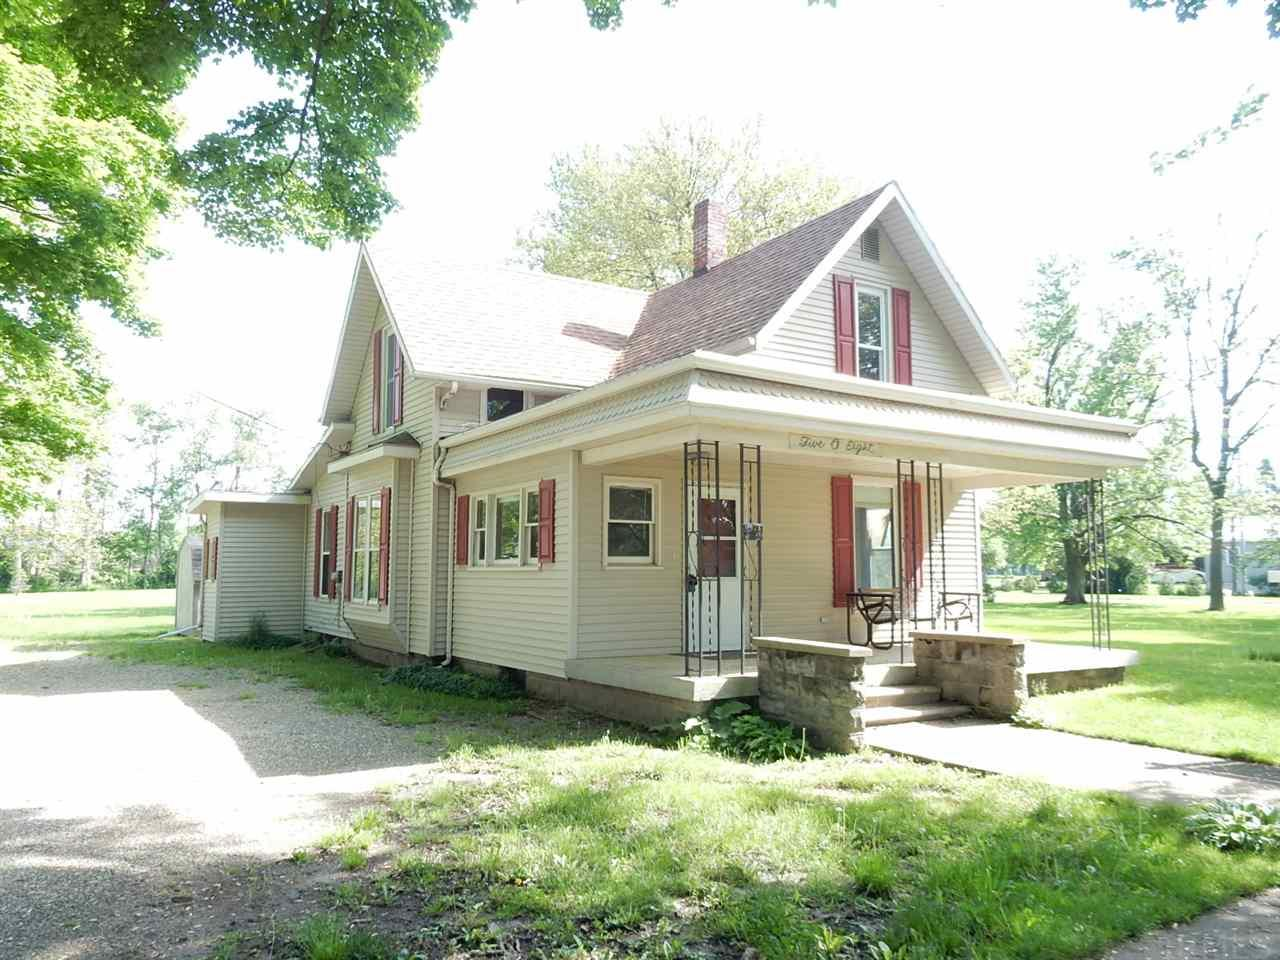 508 E Waterford Wakarusa, IN 46573